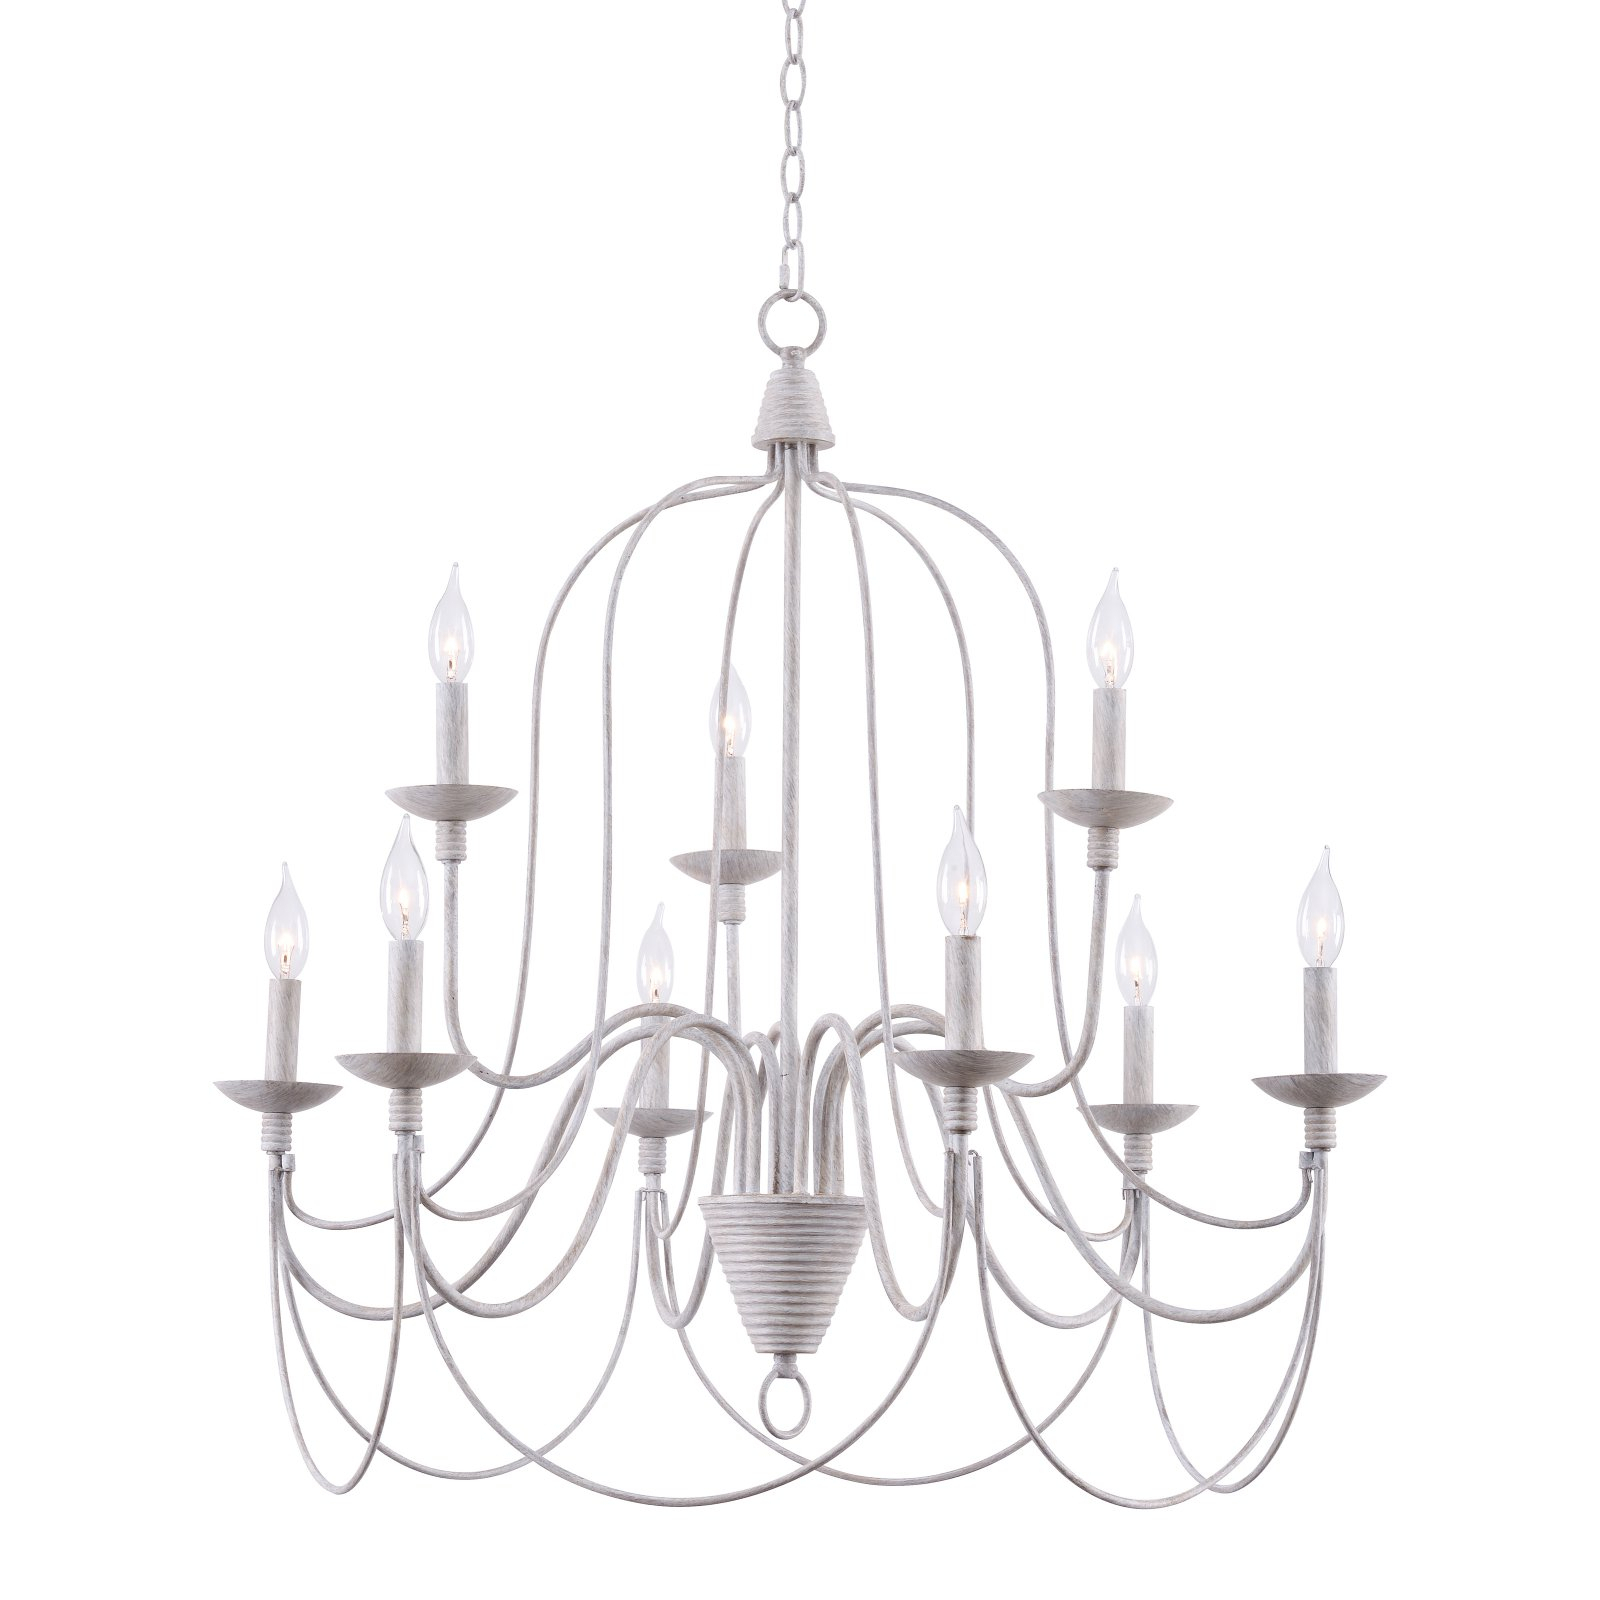 Kenroy Home Pannier 93069Wh 9 Light Chandelier | Products In Pertaining To Watford 9 Light Candle Style Chandeliers (Photo 15 of 30)